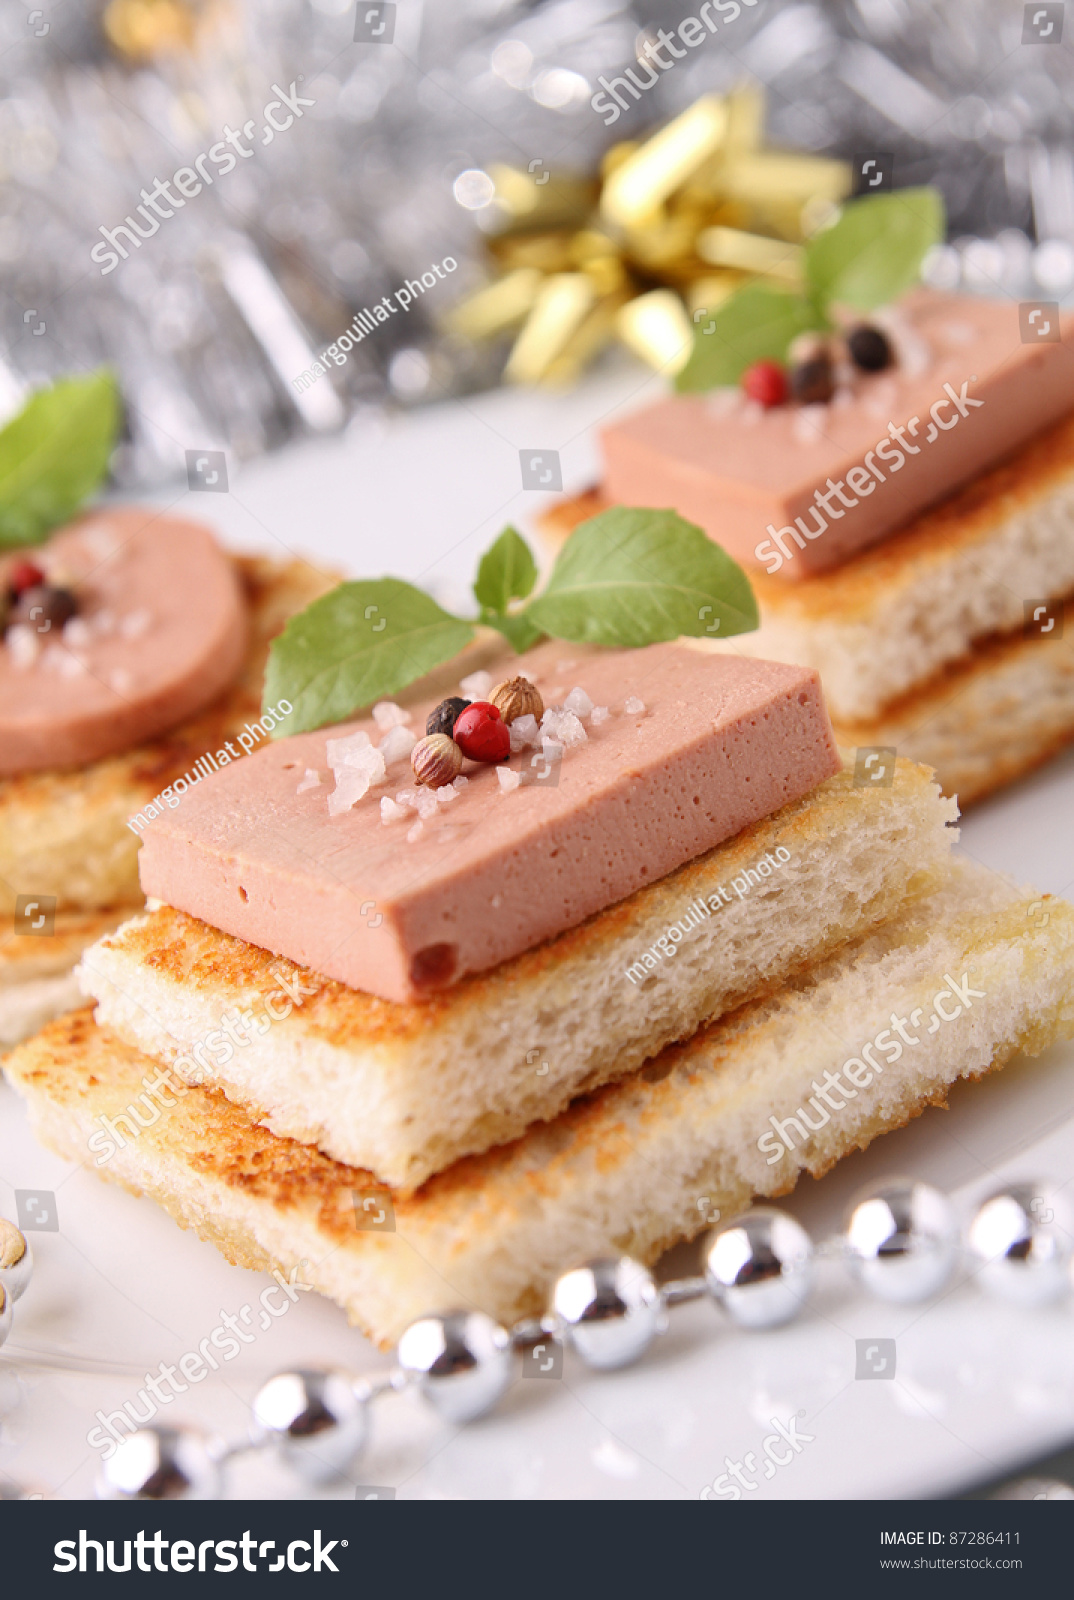 Canapes bread with foie gras stock photo 87286411 for Canape foie gras